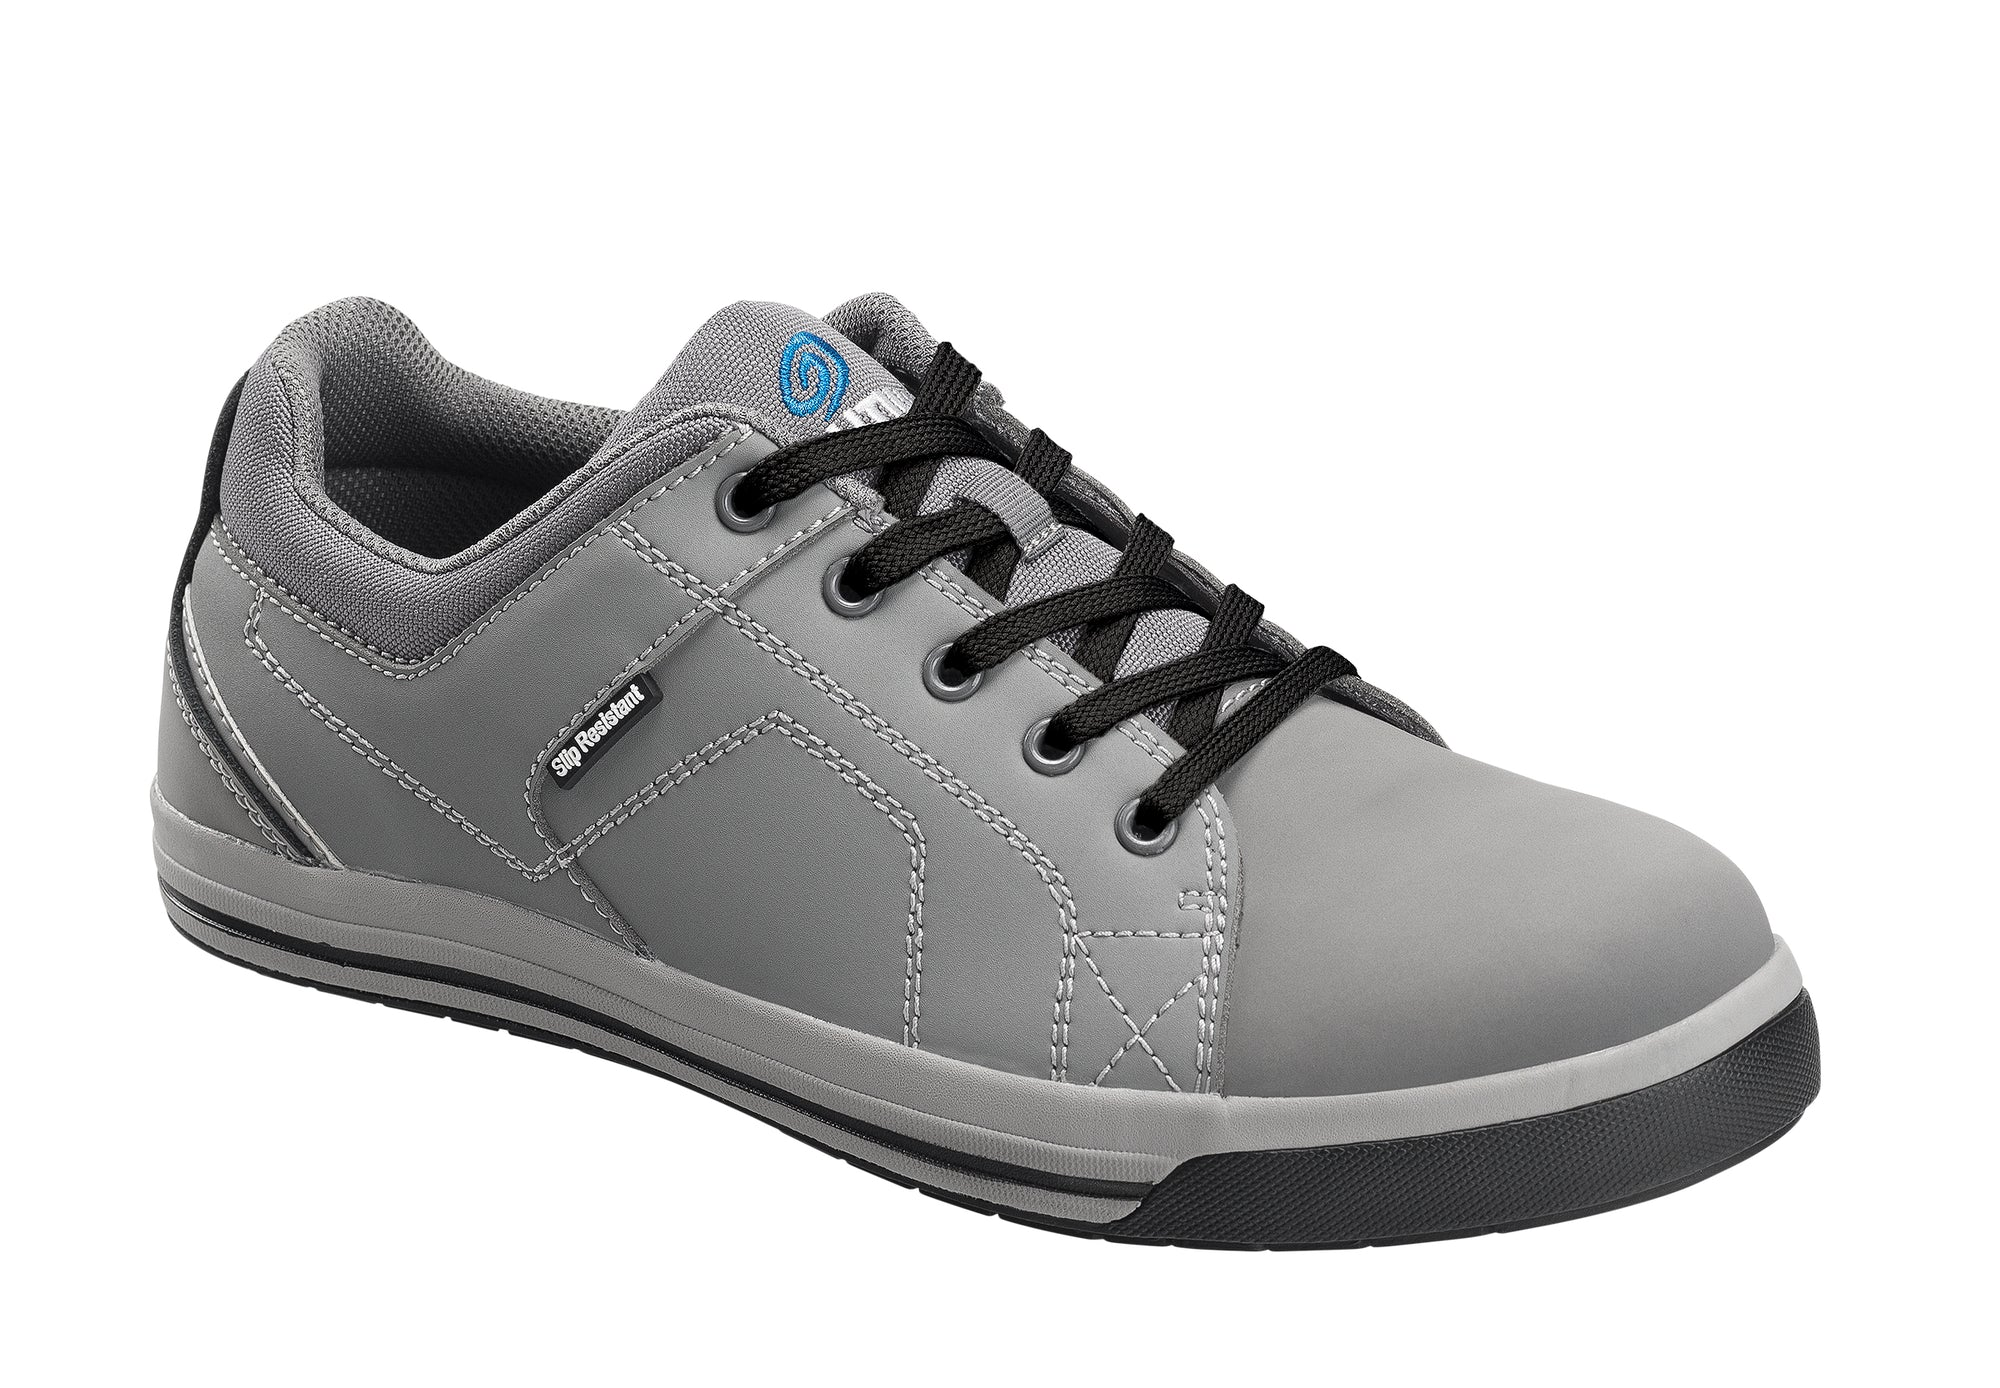 Westside EH Steel Toe Slip-Resistant Work Shoe